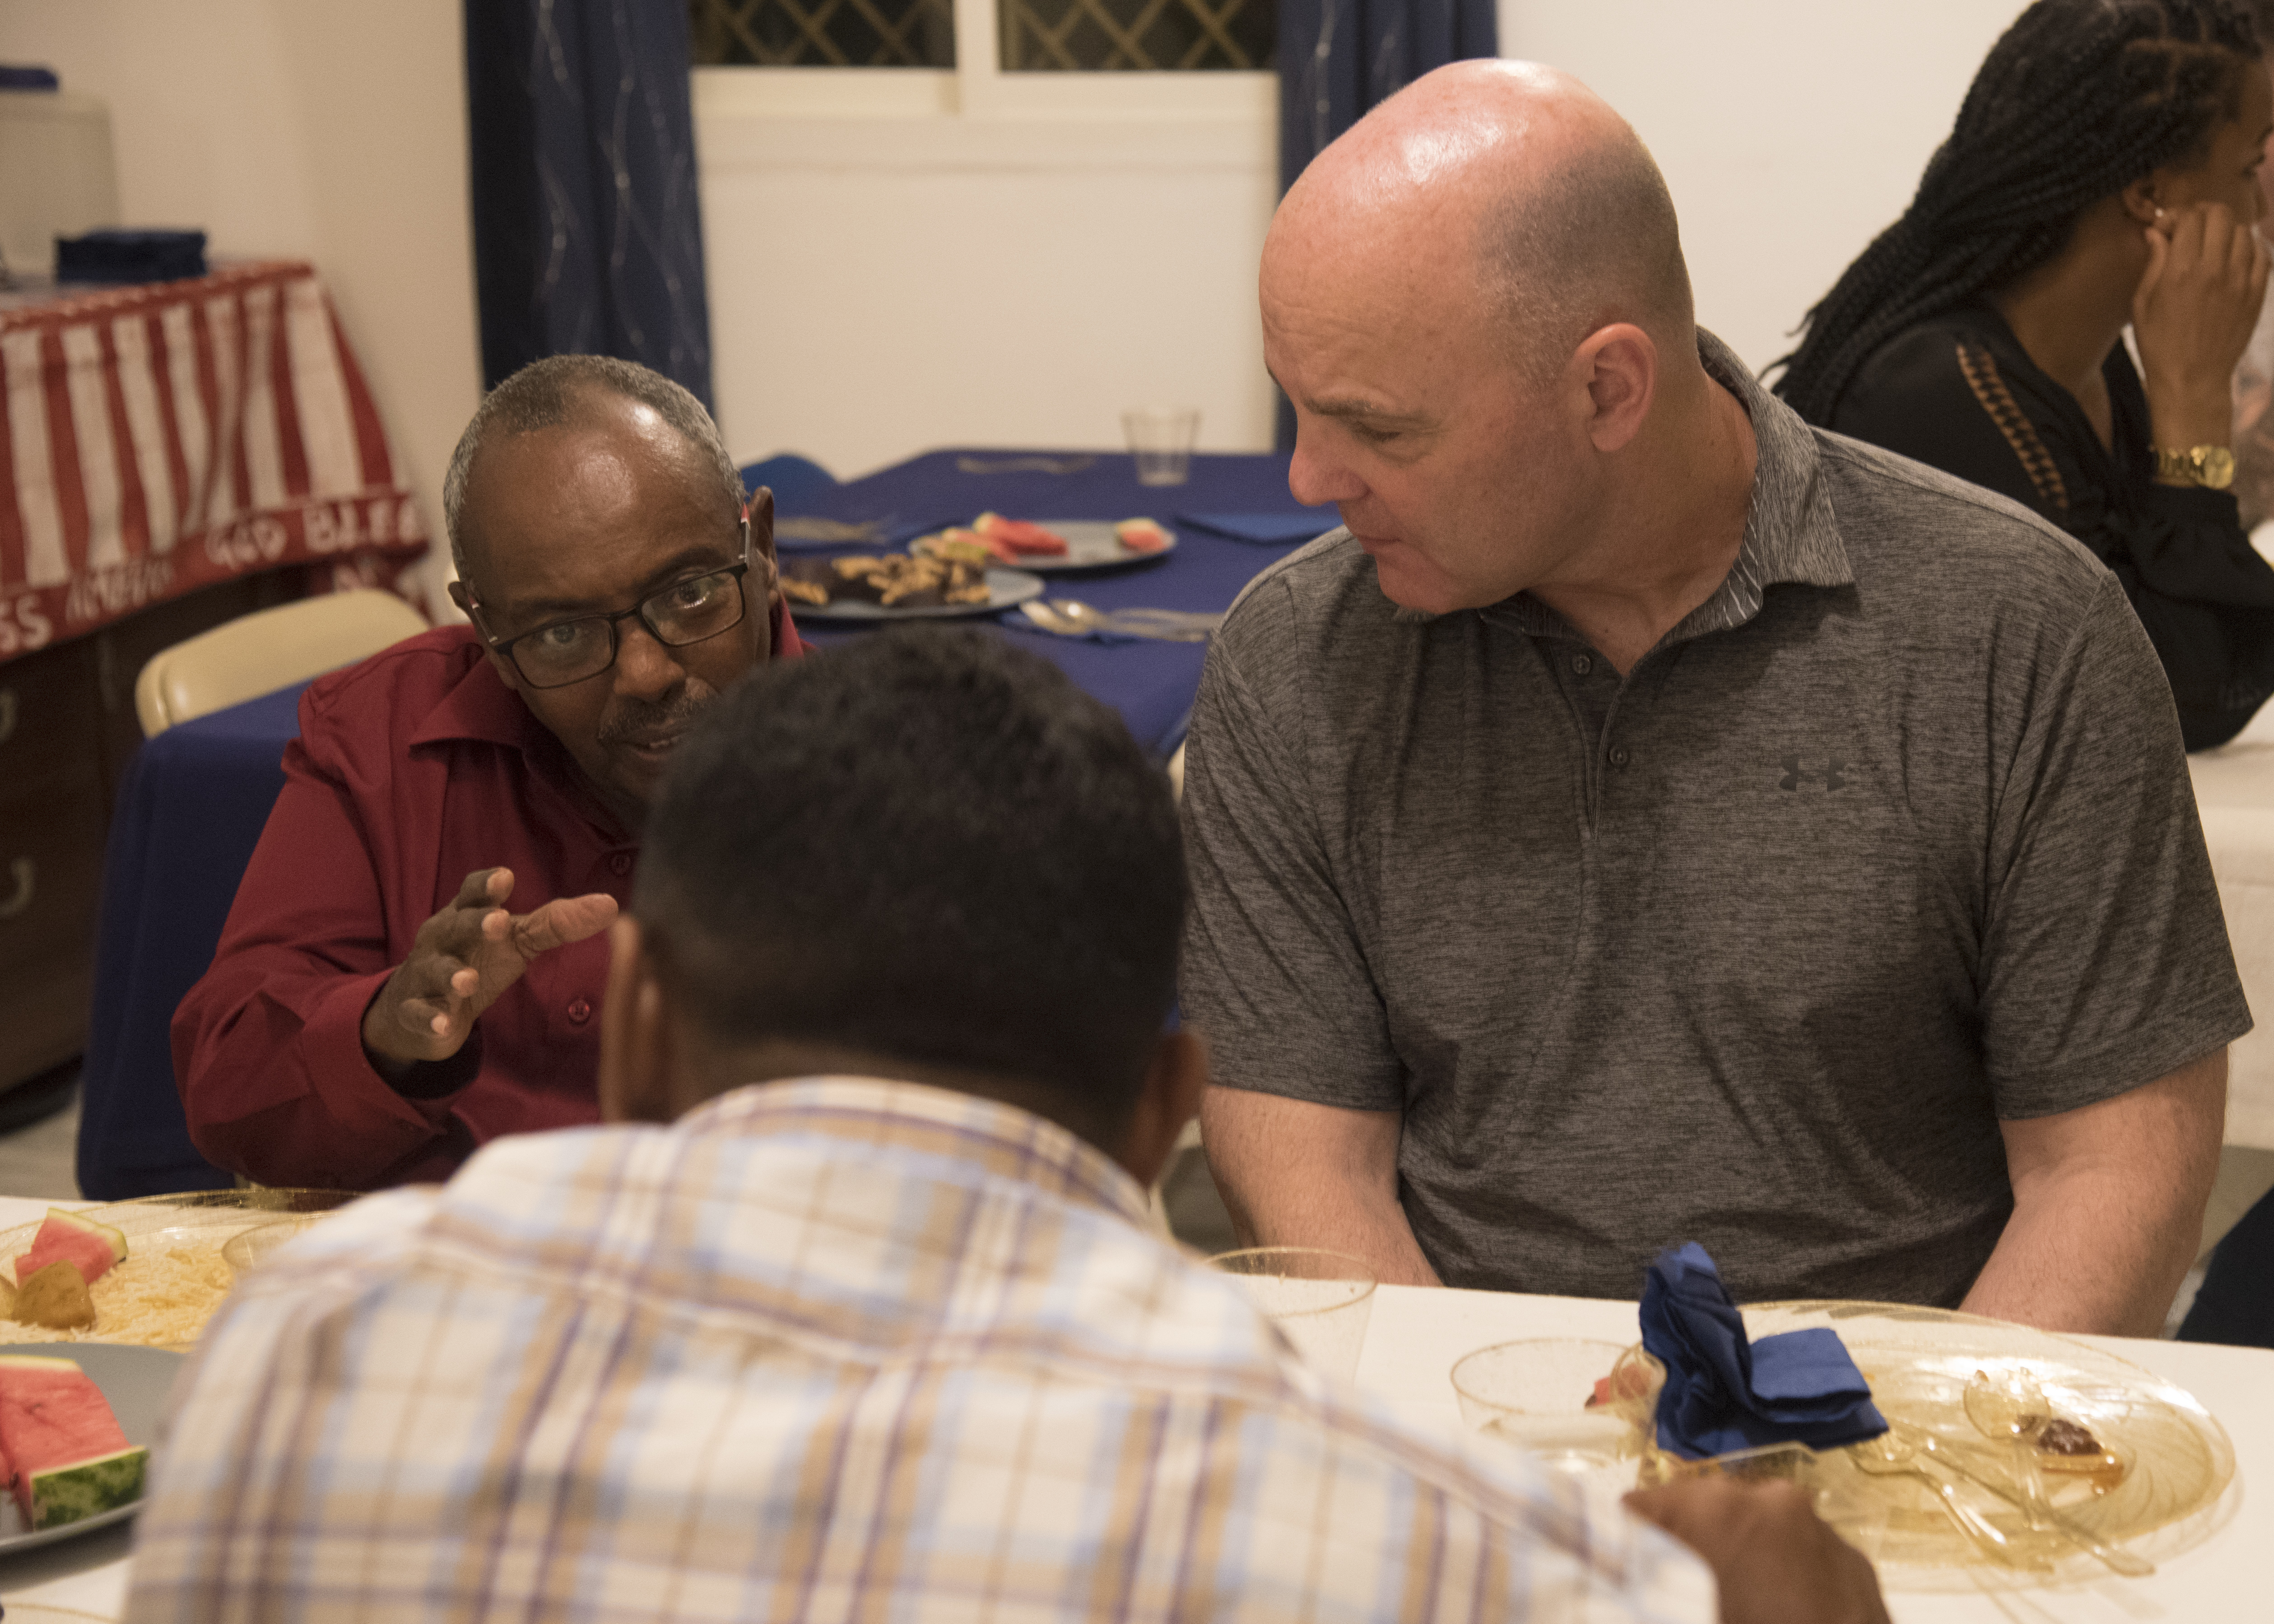 U.S. Air Force Brig. Gen. James R. Kriesel, right, deputy commanding general, Combined Joint Task Force-Horn of Africa, listens to a Djiboutian guest at an Iftar celebration at the home of U.S. Embassy Djibouti's senior defense attaché in Djibouti, May 12, 2019. The Iftar is a fast-breaking meal Muslims eat after sunset during Ramadan, the ninth month of the Islamic year observed with daily fasting from dawn to sunset. (U.S. Air Force photo by Staff Sgt. Kirsten Brandes)